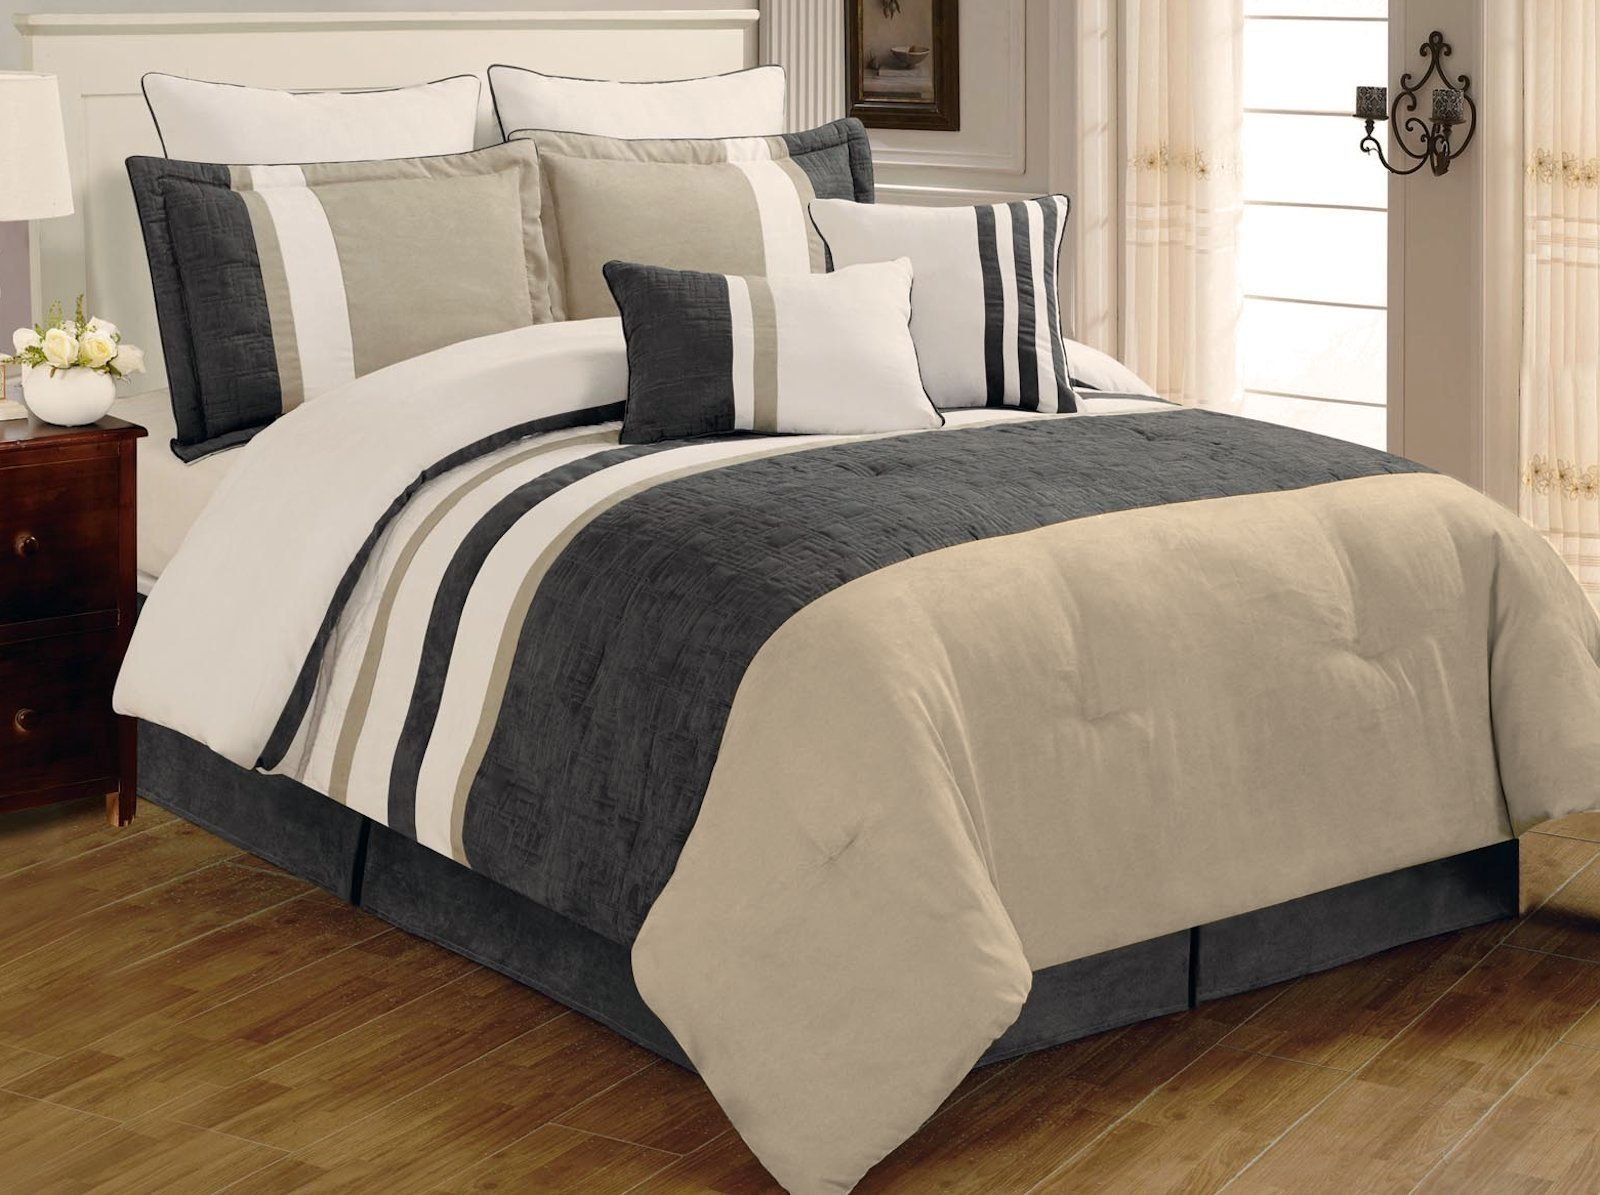 Legacy Decor 8 Pc Grey Beige And White Striped Micro Suede Comforter Set Queen Size Want To Know More Comforter Bedding Sets Bed Comforters Comforter Sets